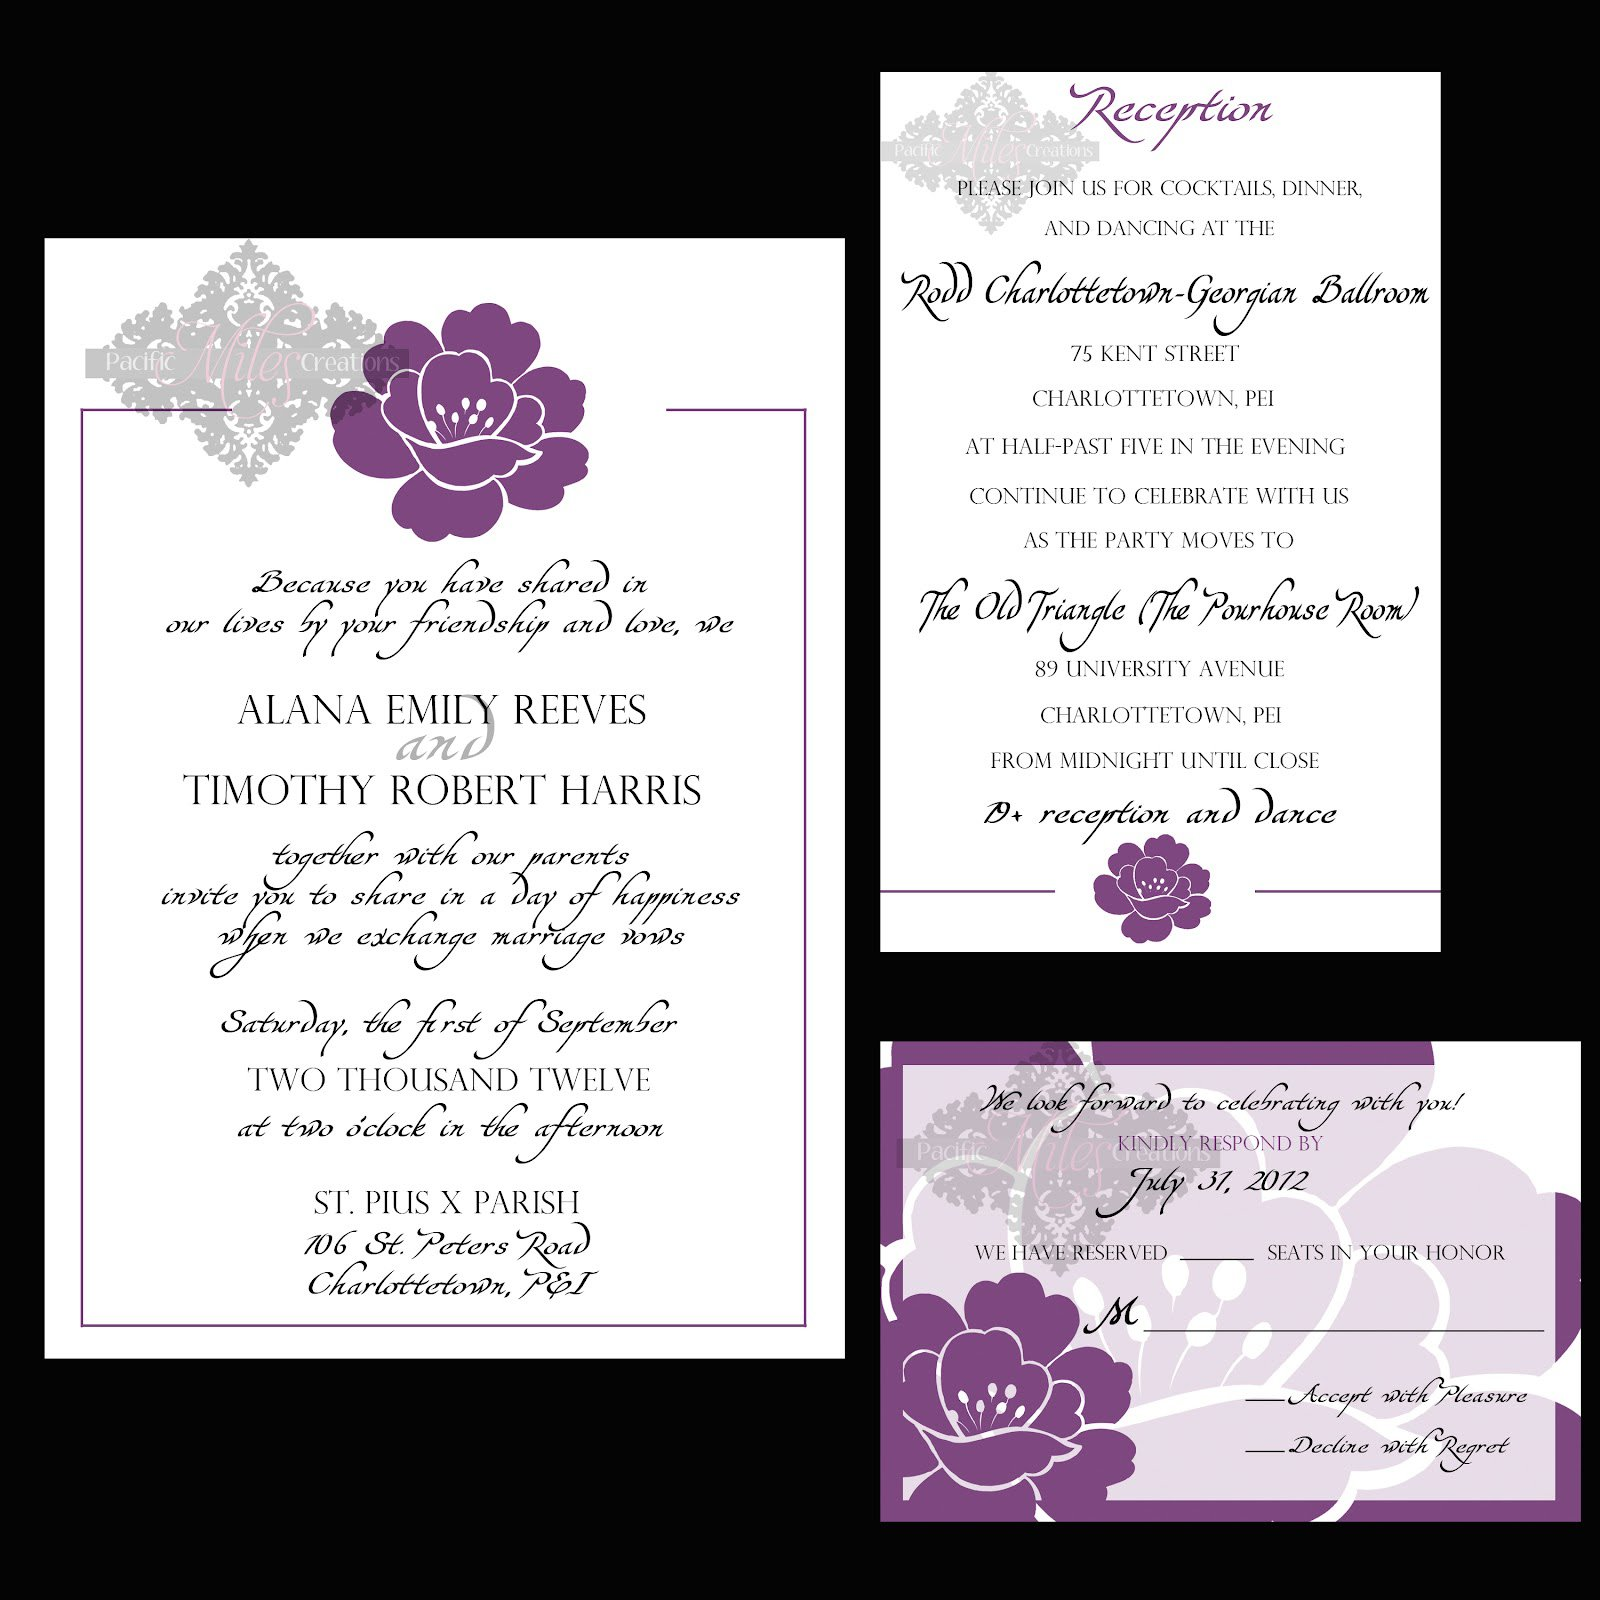 Wedding Reception Invitations Wording